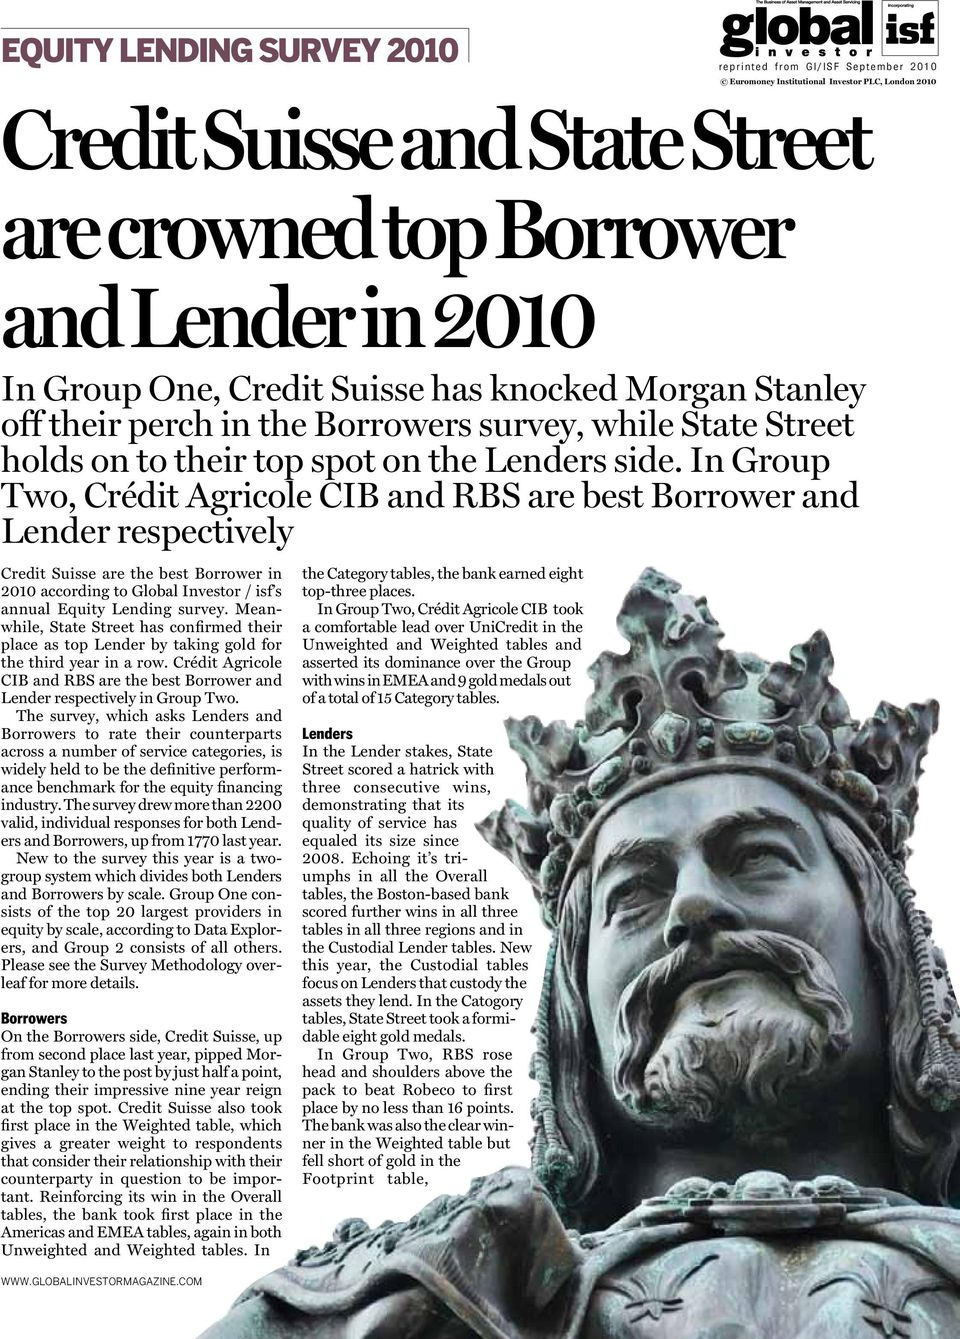 In Group Two, Crédit Agricole CIB and RBS are best Borrower and Lender respectively Credit Suisse are the best Borrower in 2010 according to Global Investor / isf s annual Equity Lending survey.